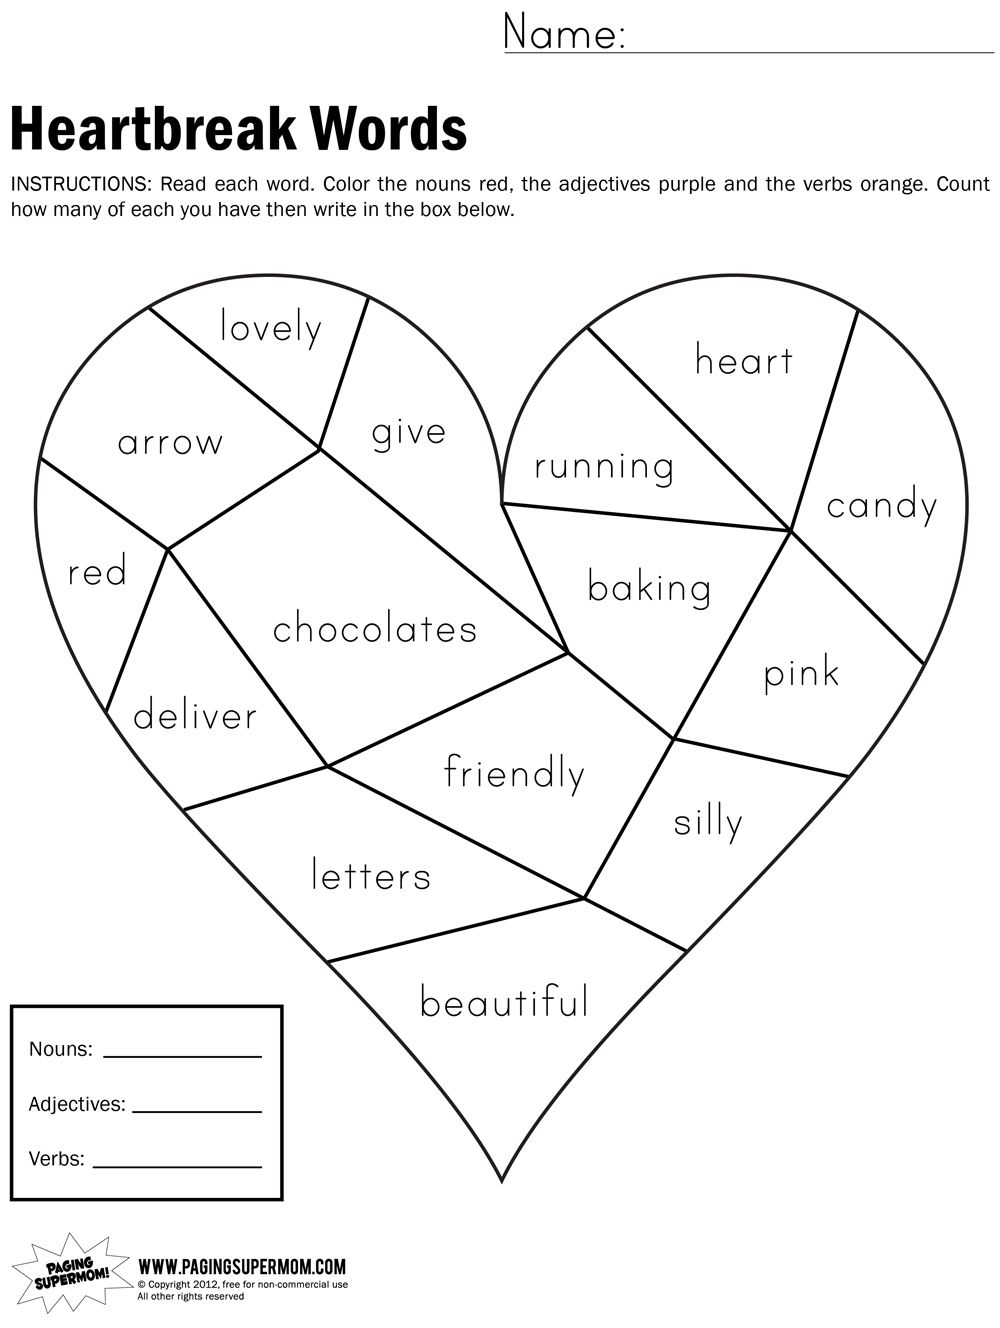 Worksheet Worksheet Free Printable word free printable worksheets and on pinterest